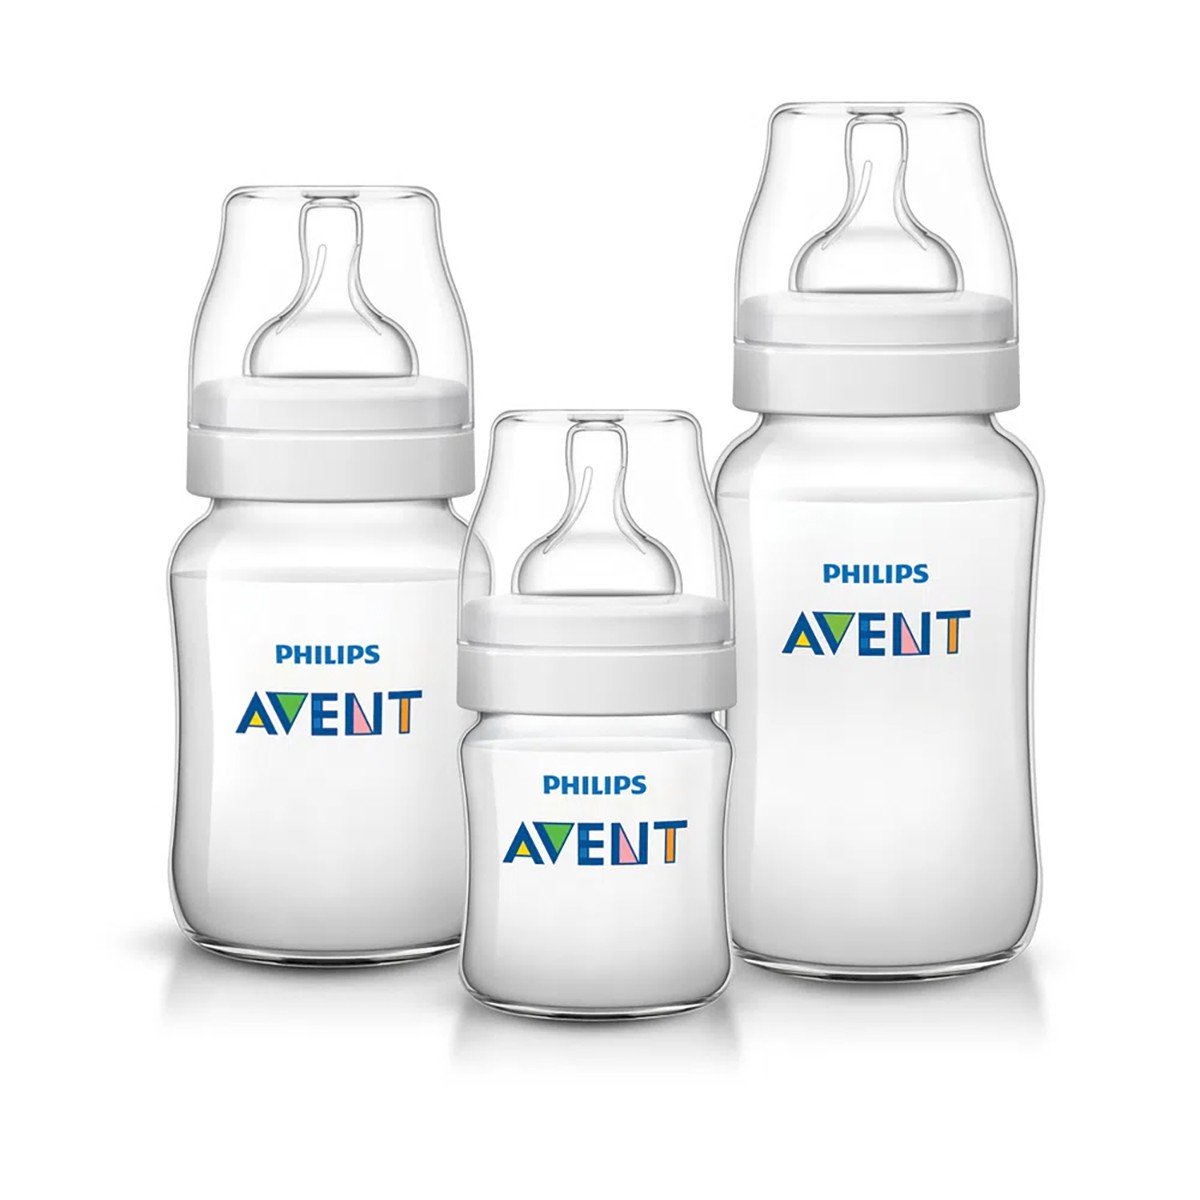 Kit Mamadeiras Philips Avent Anti Colica 3 unidades Classica